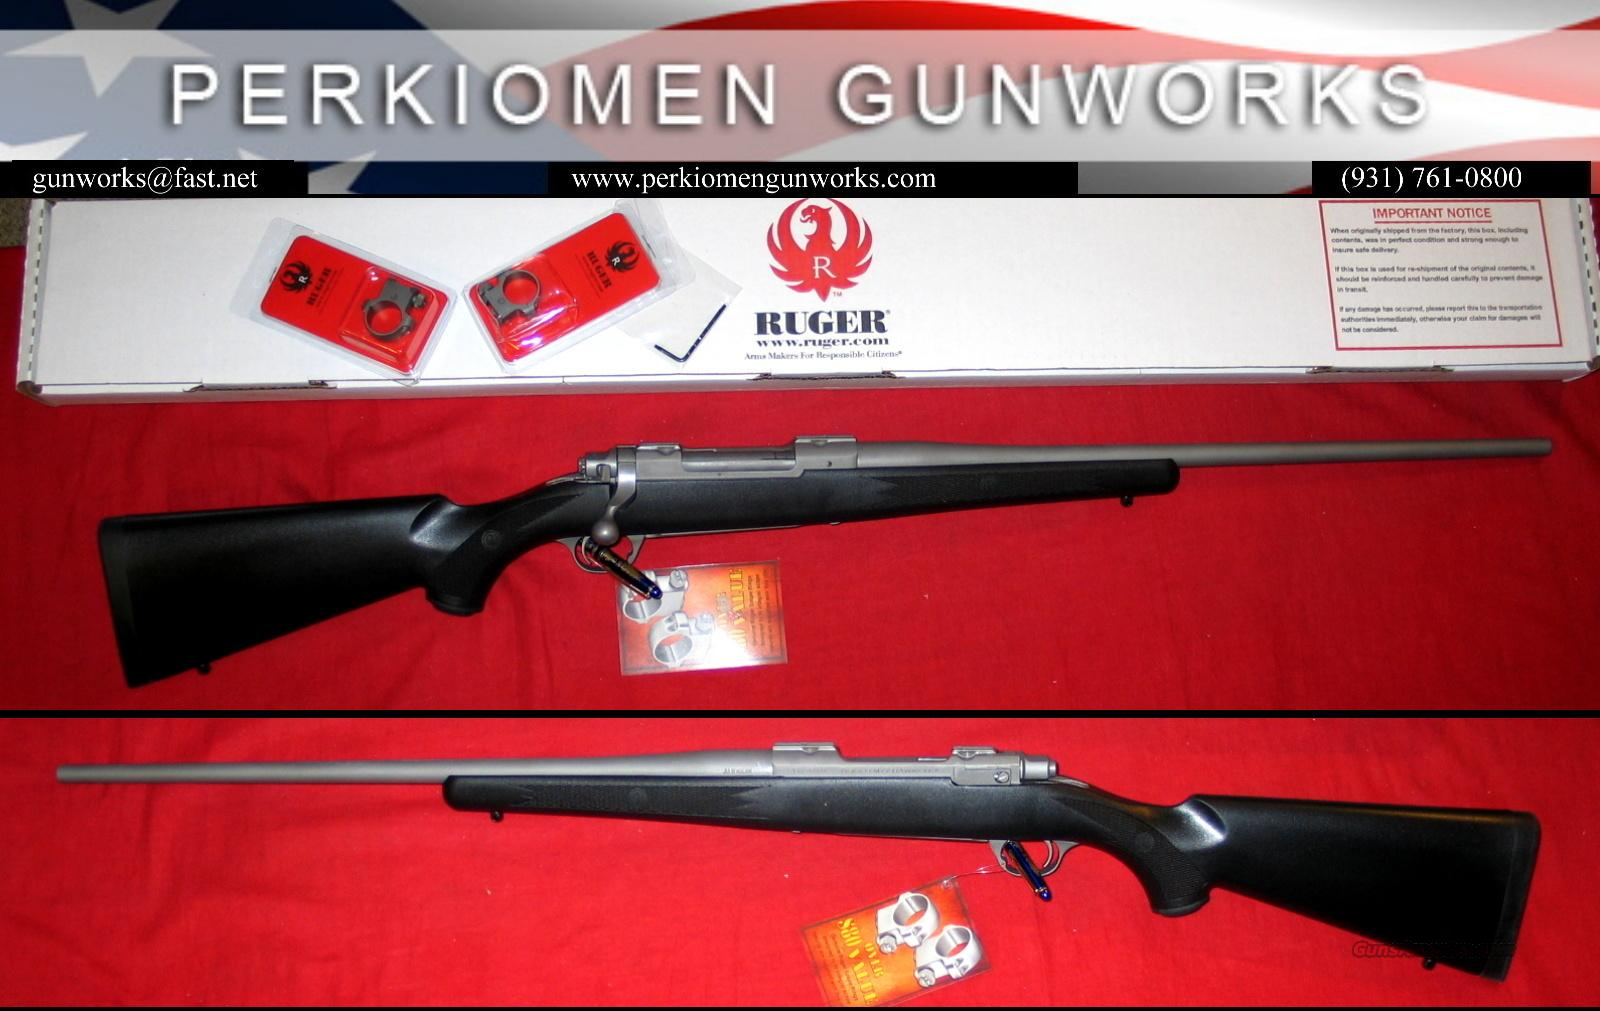 77 All Weather SS/Syn .35 Whelen - Closeout!!  Guns > Rifles > Ruger Rifles > Model 77